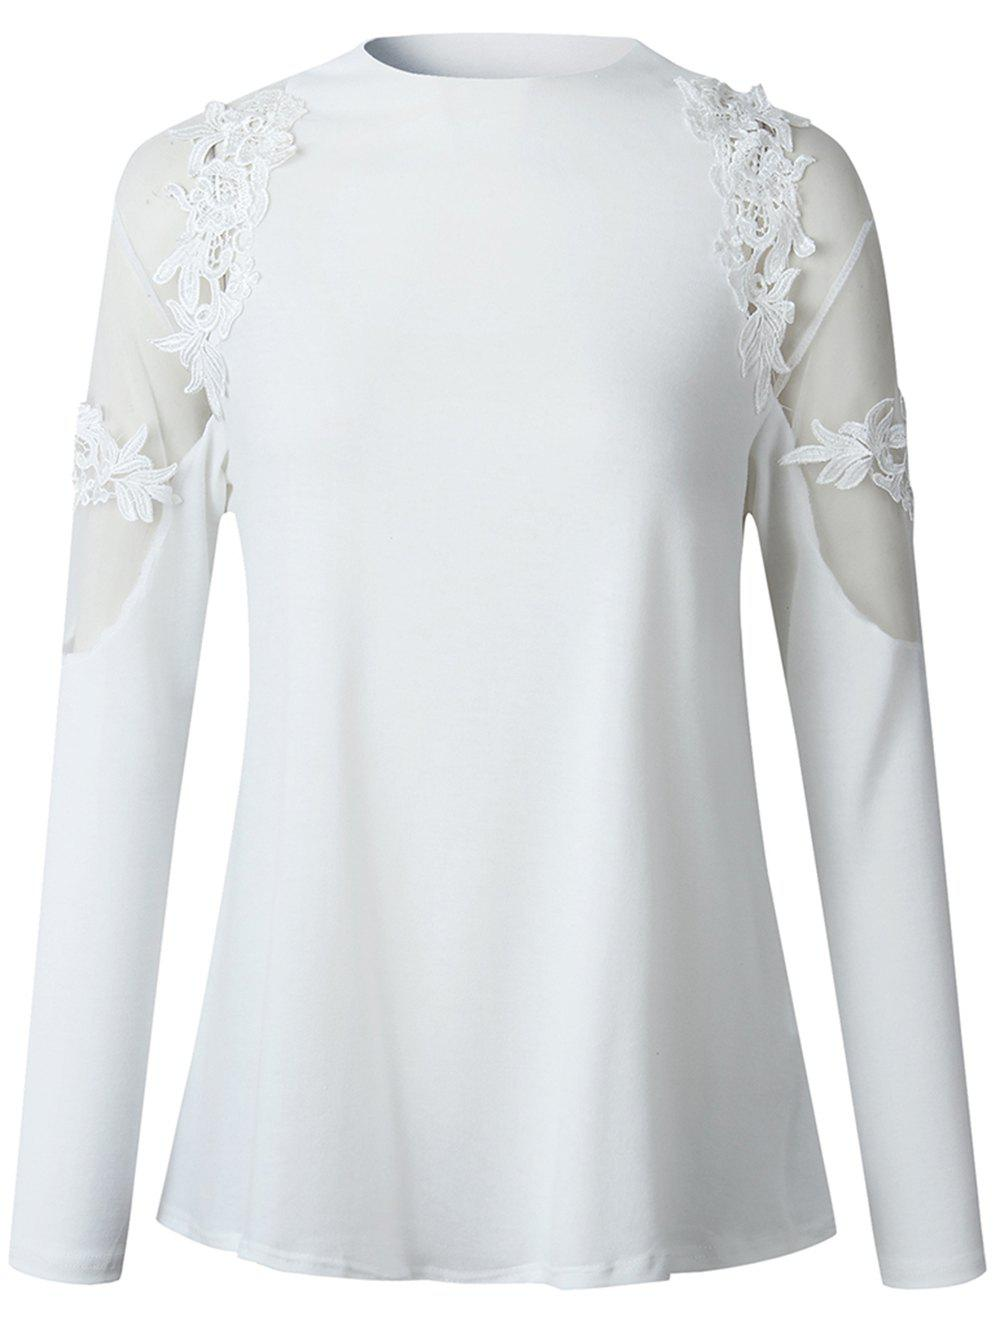 Discount 2019 New Womens Fashion lace Long Sleeve Shirt  Tops